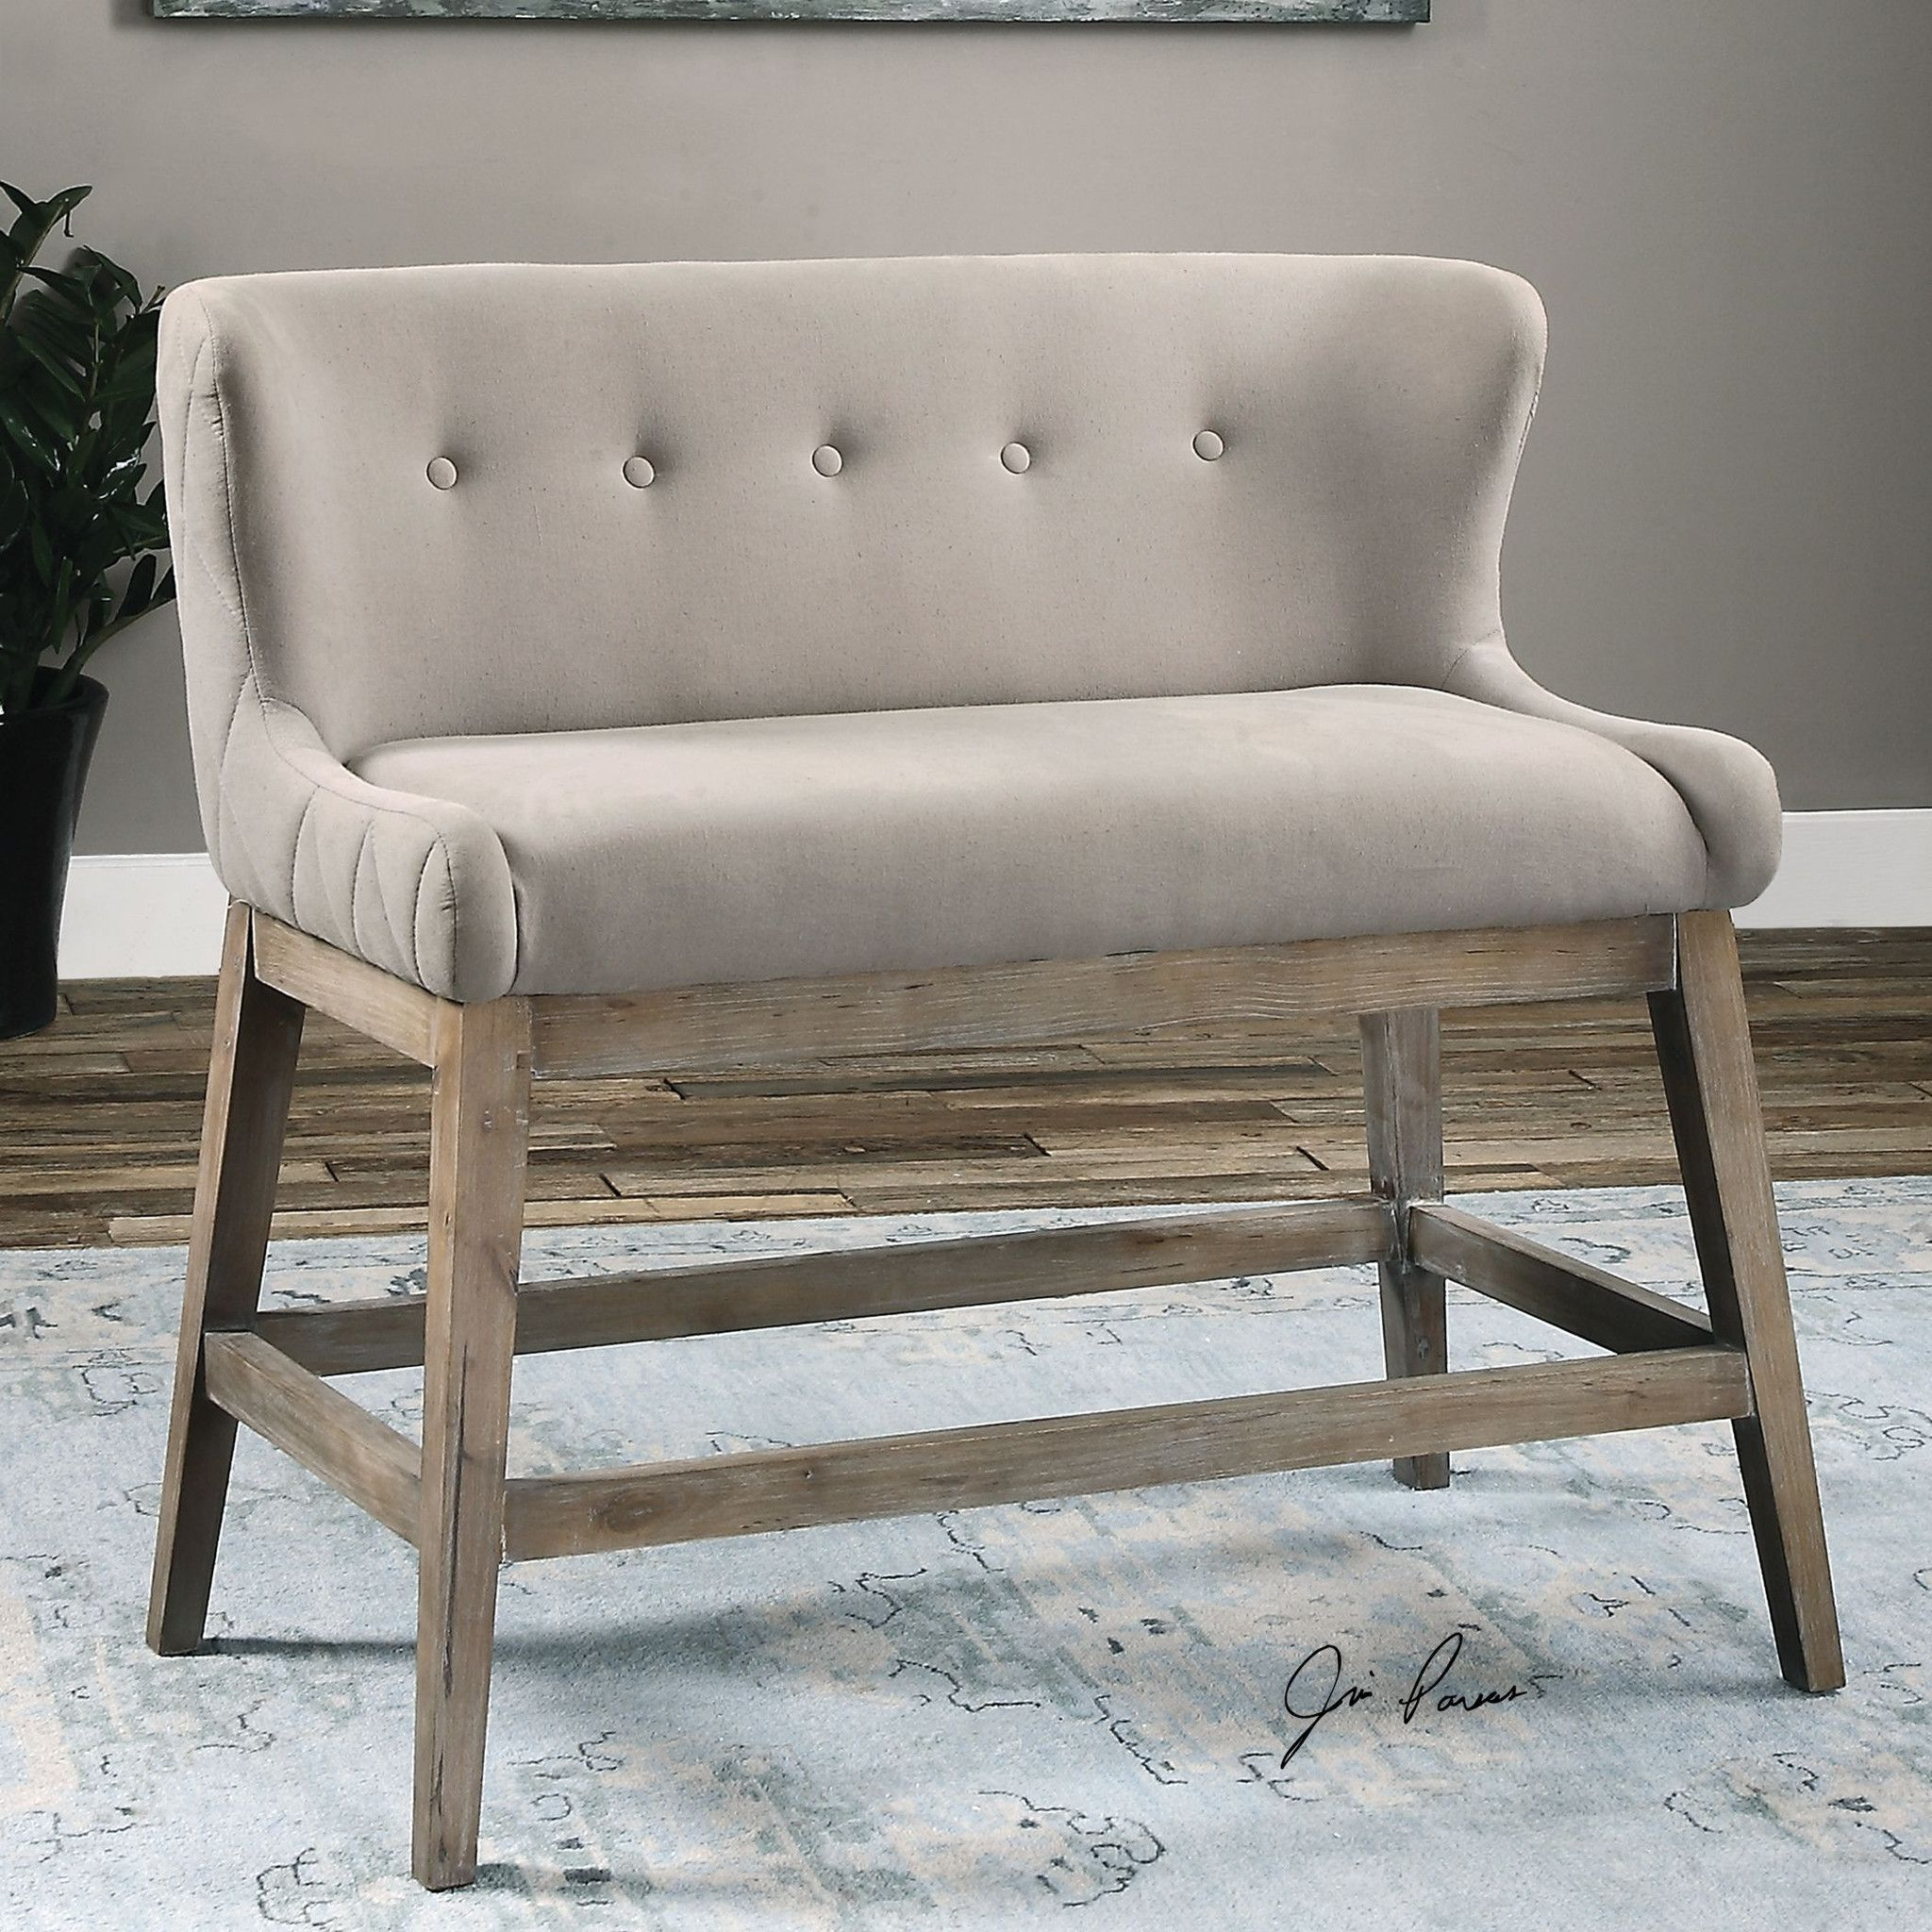 Dalena Double Counter Stool southern ELEVATION